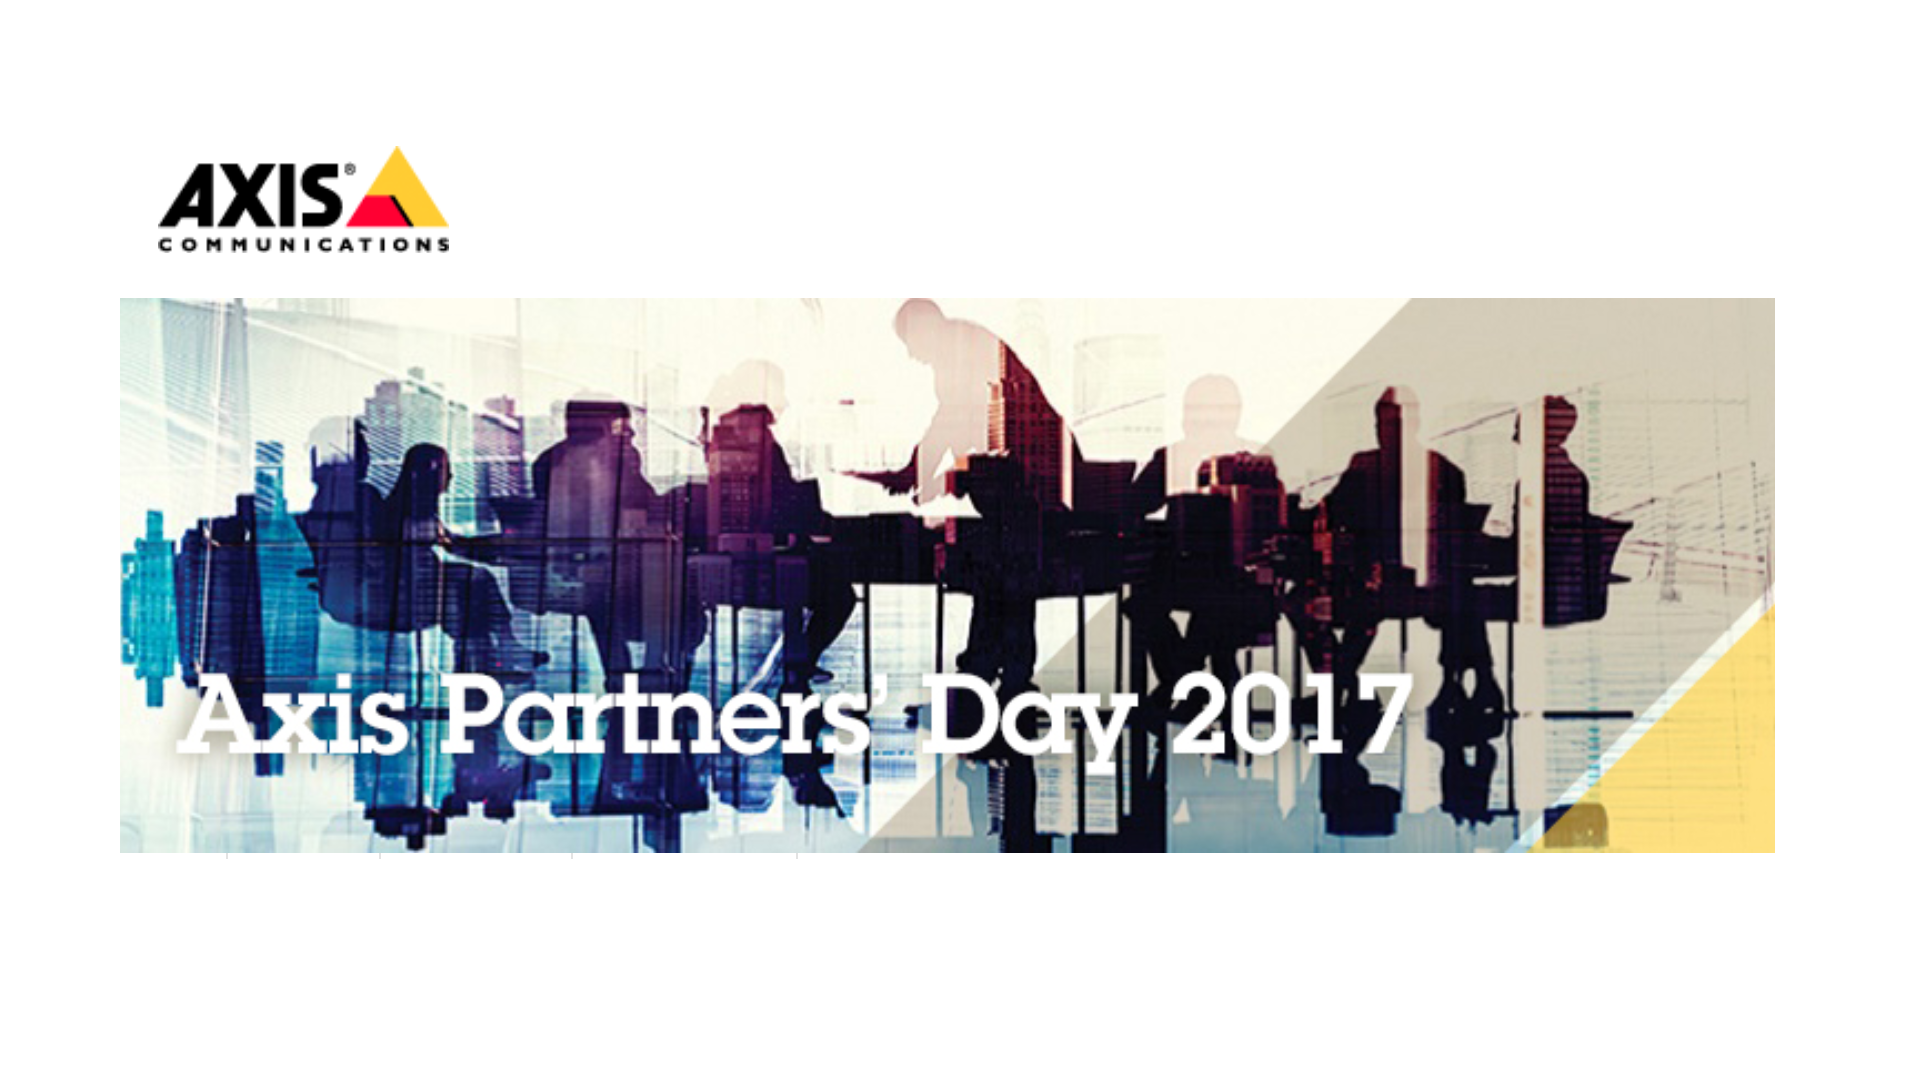 Axis Partners Day 2017